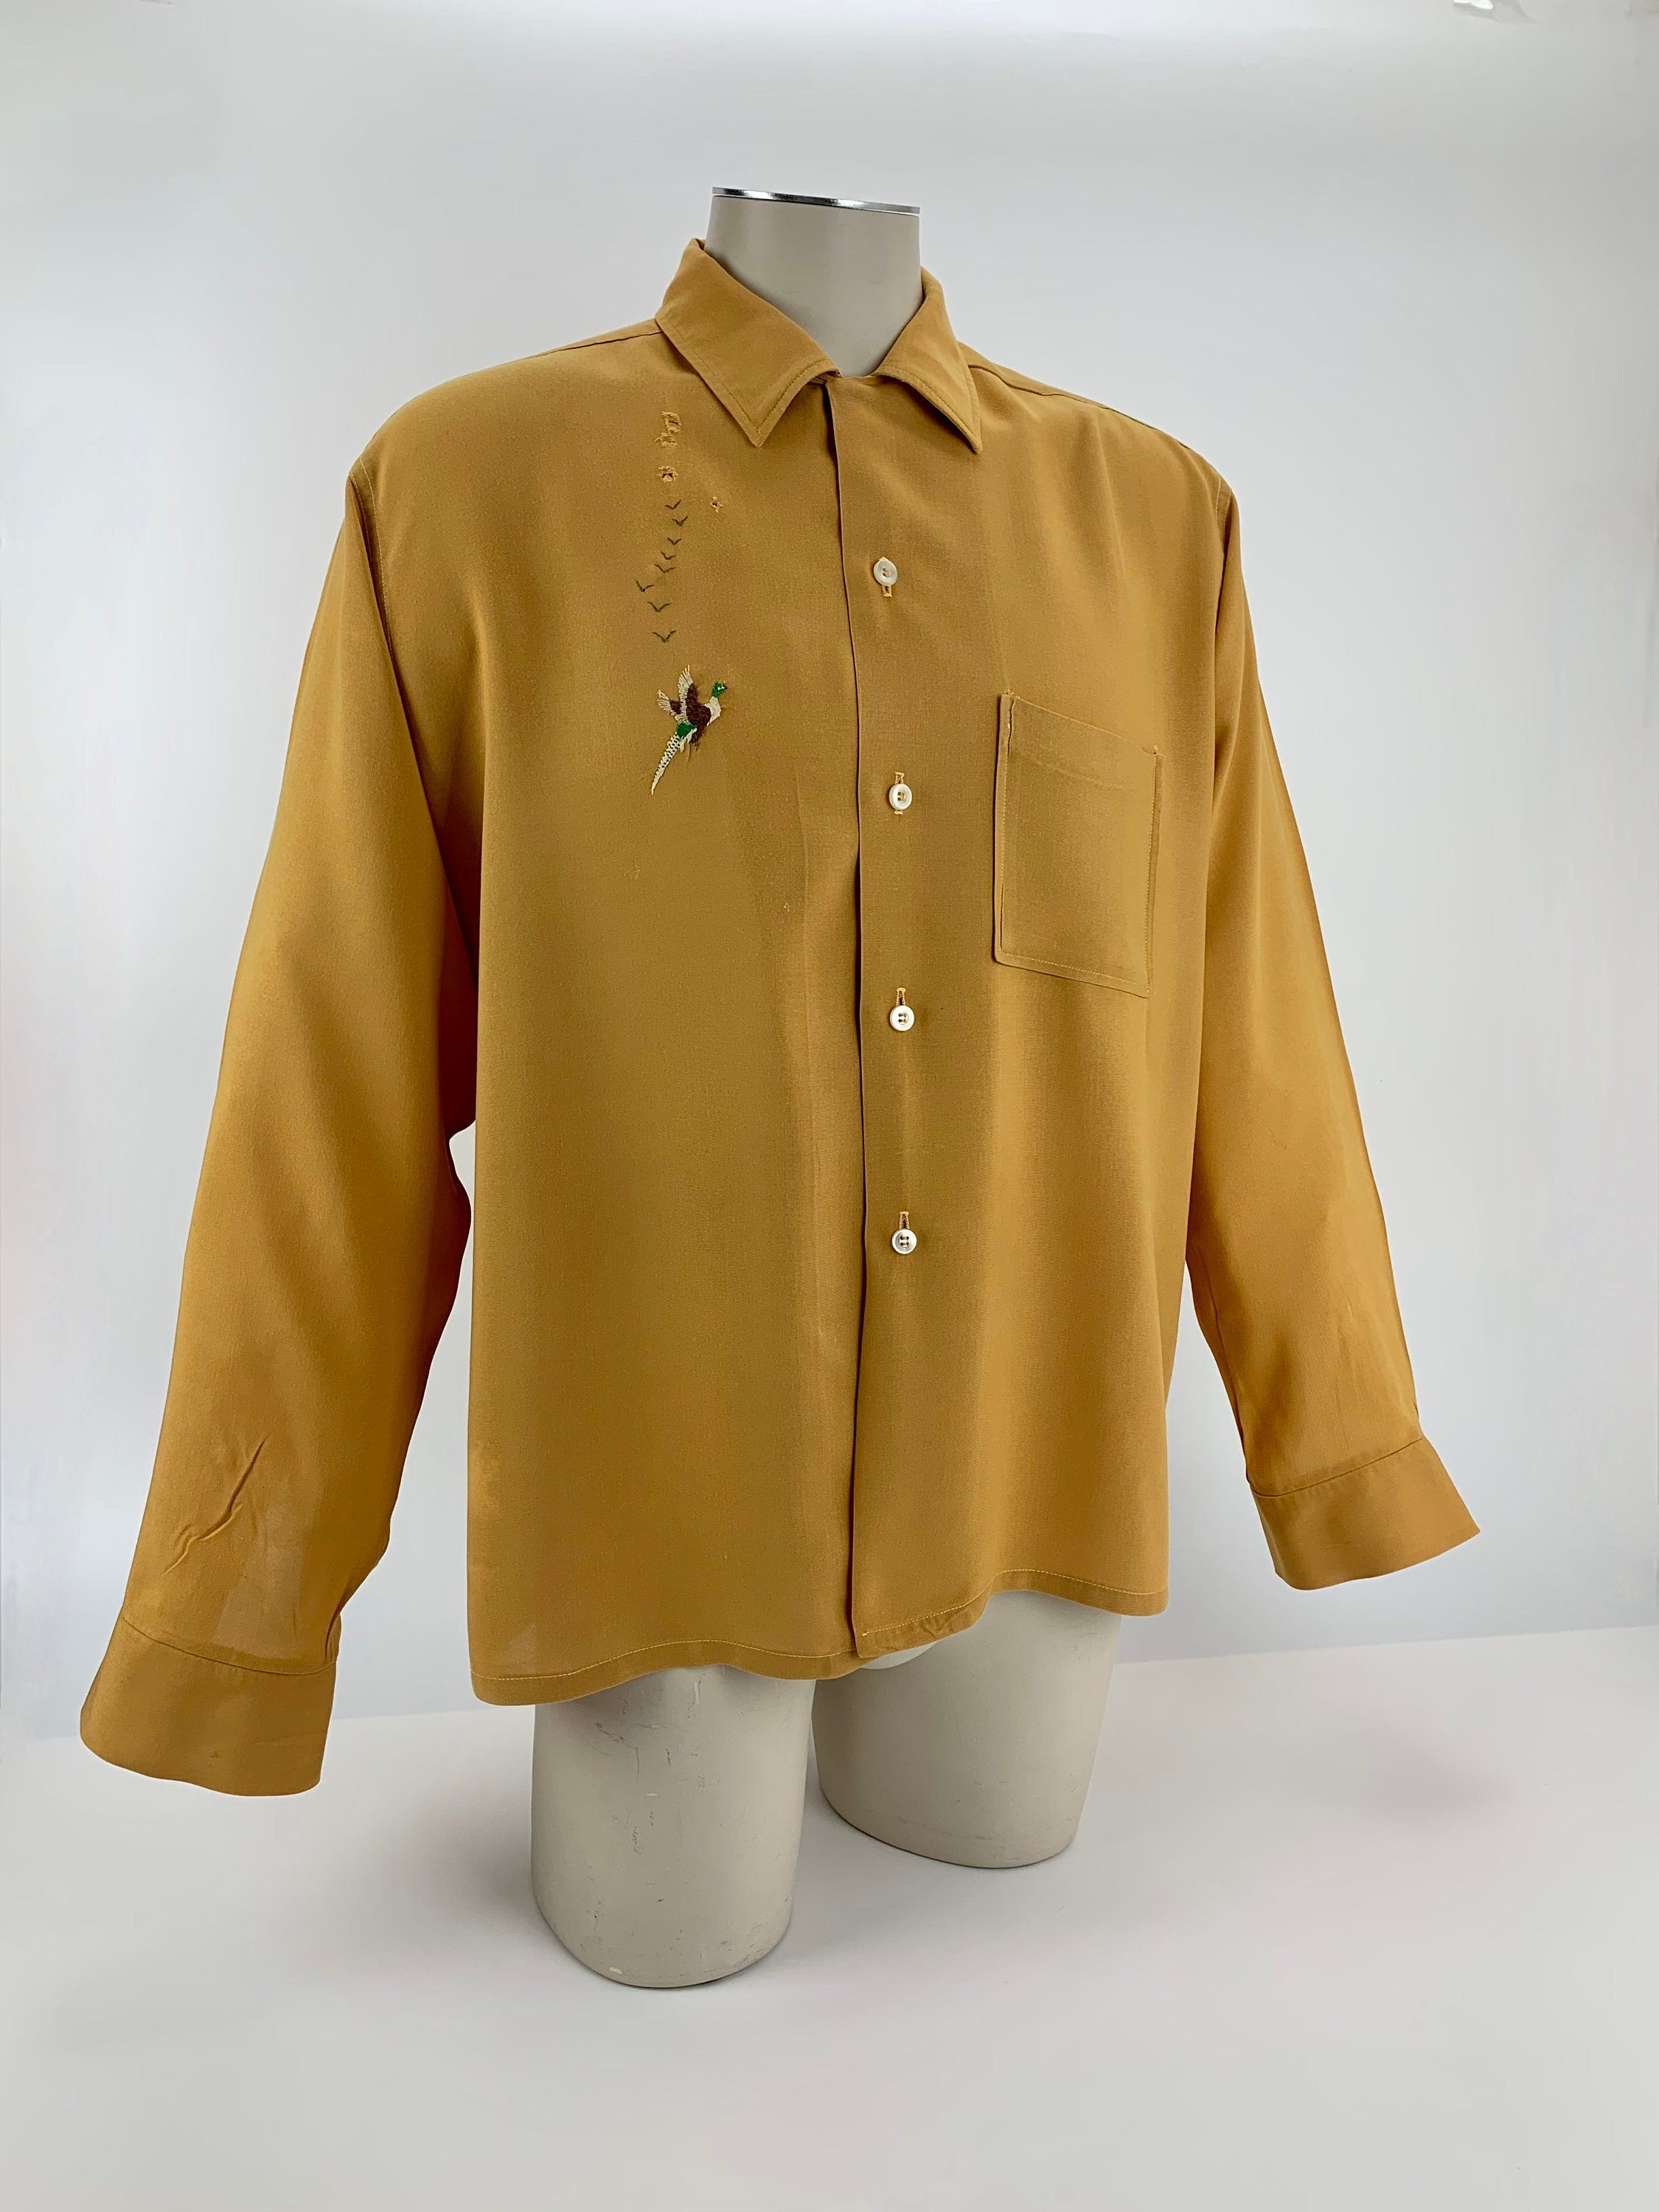 1950s Mens Hats | 50s Vintage Men's Hats 1950s Rayon Shirt - Brent Label Embroidered Pheasant Loop Collar Patch Pocket Mens Size Large As Is $22.95 AT vintagedancer.com